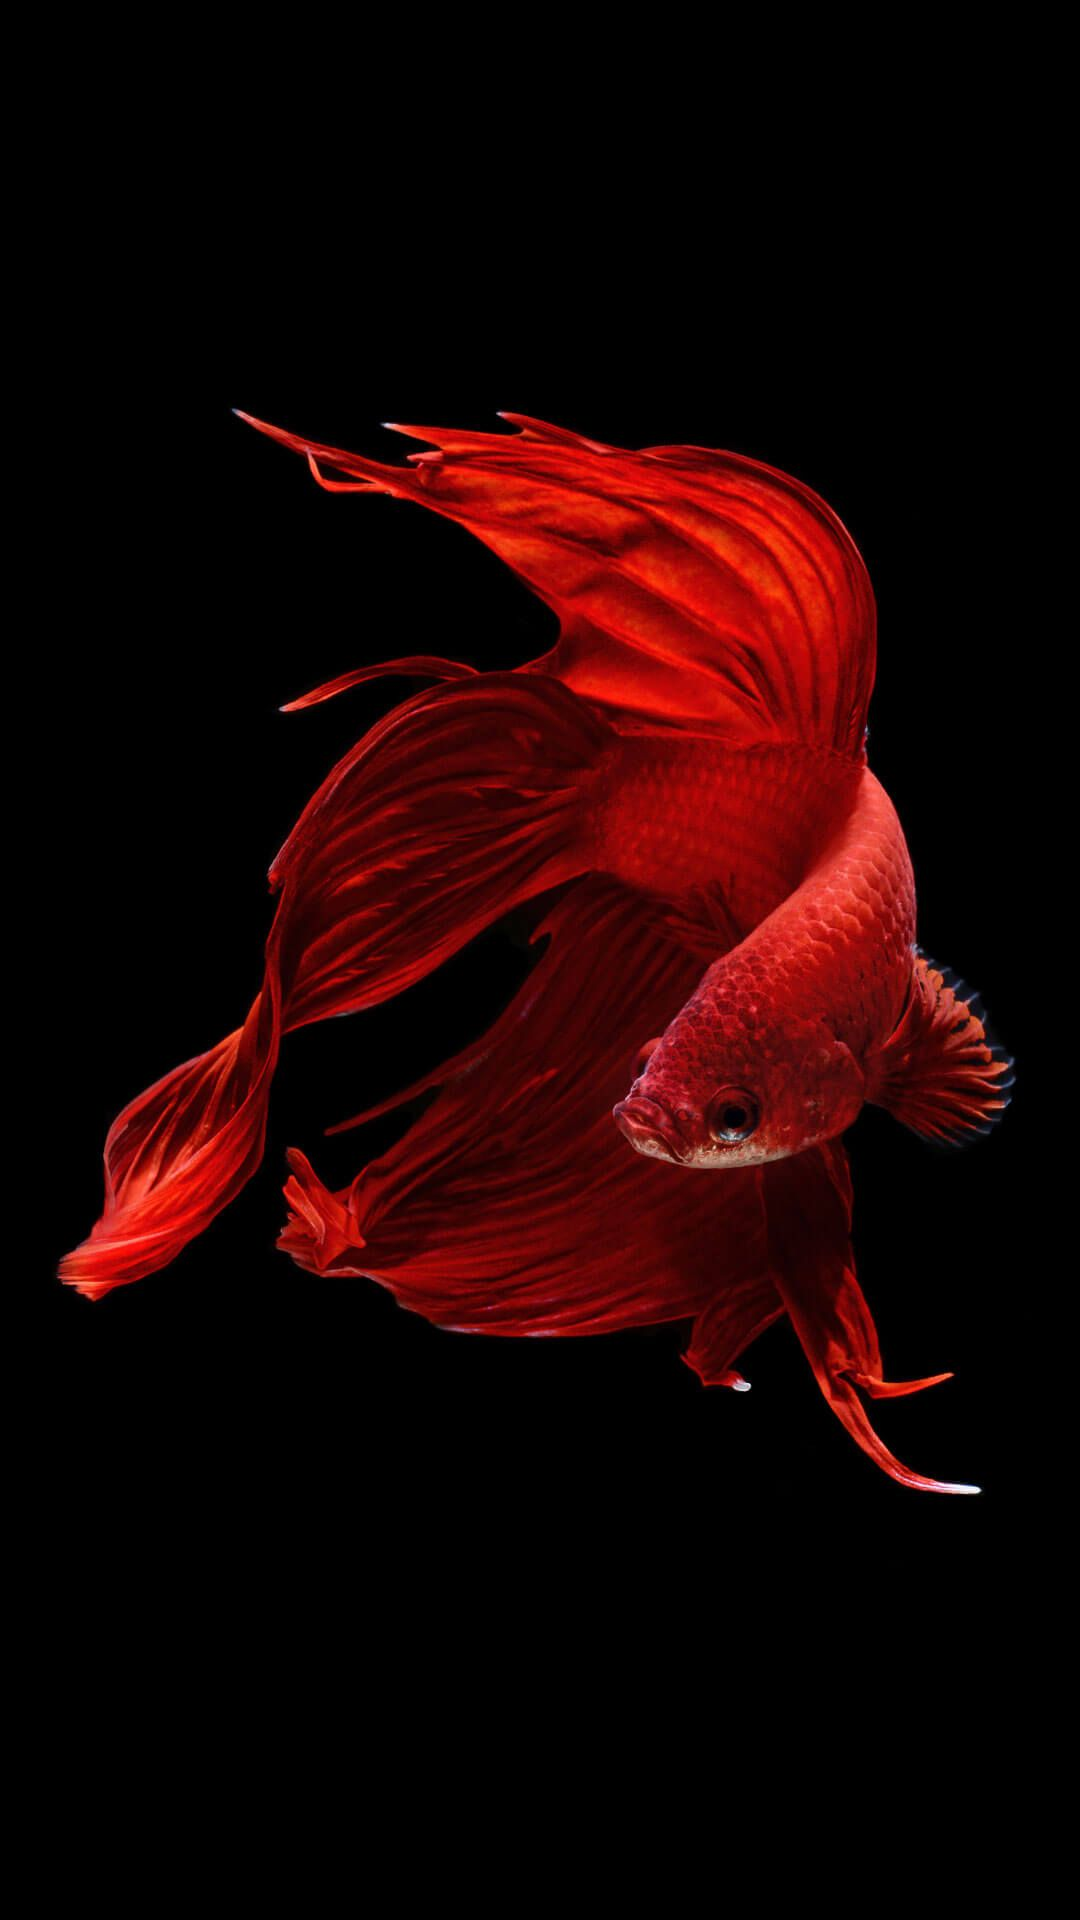 Iphone Fish Wallpapers Free Download Fish Wallpaper Iphone 6s Wallpaper Fish Wallpaper Iphone